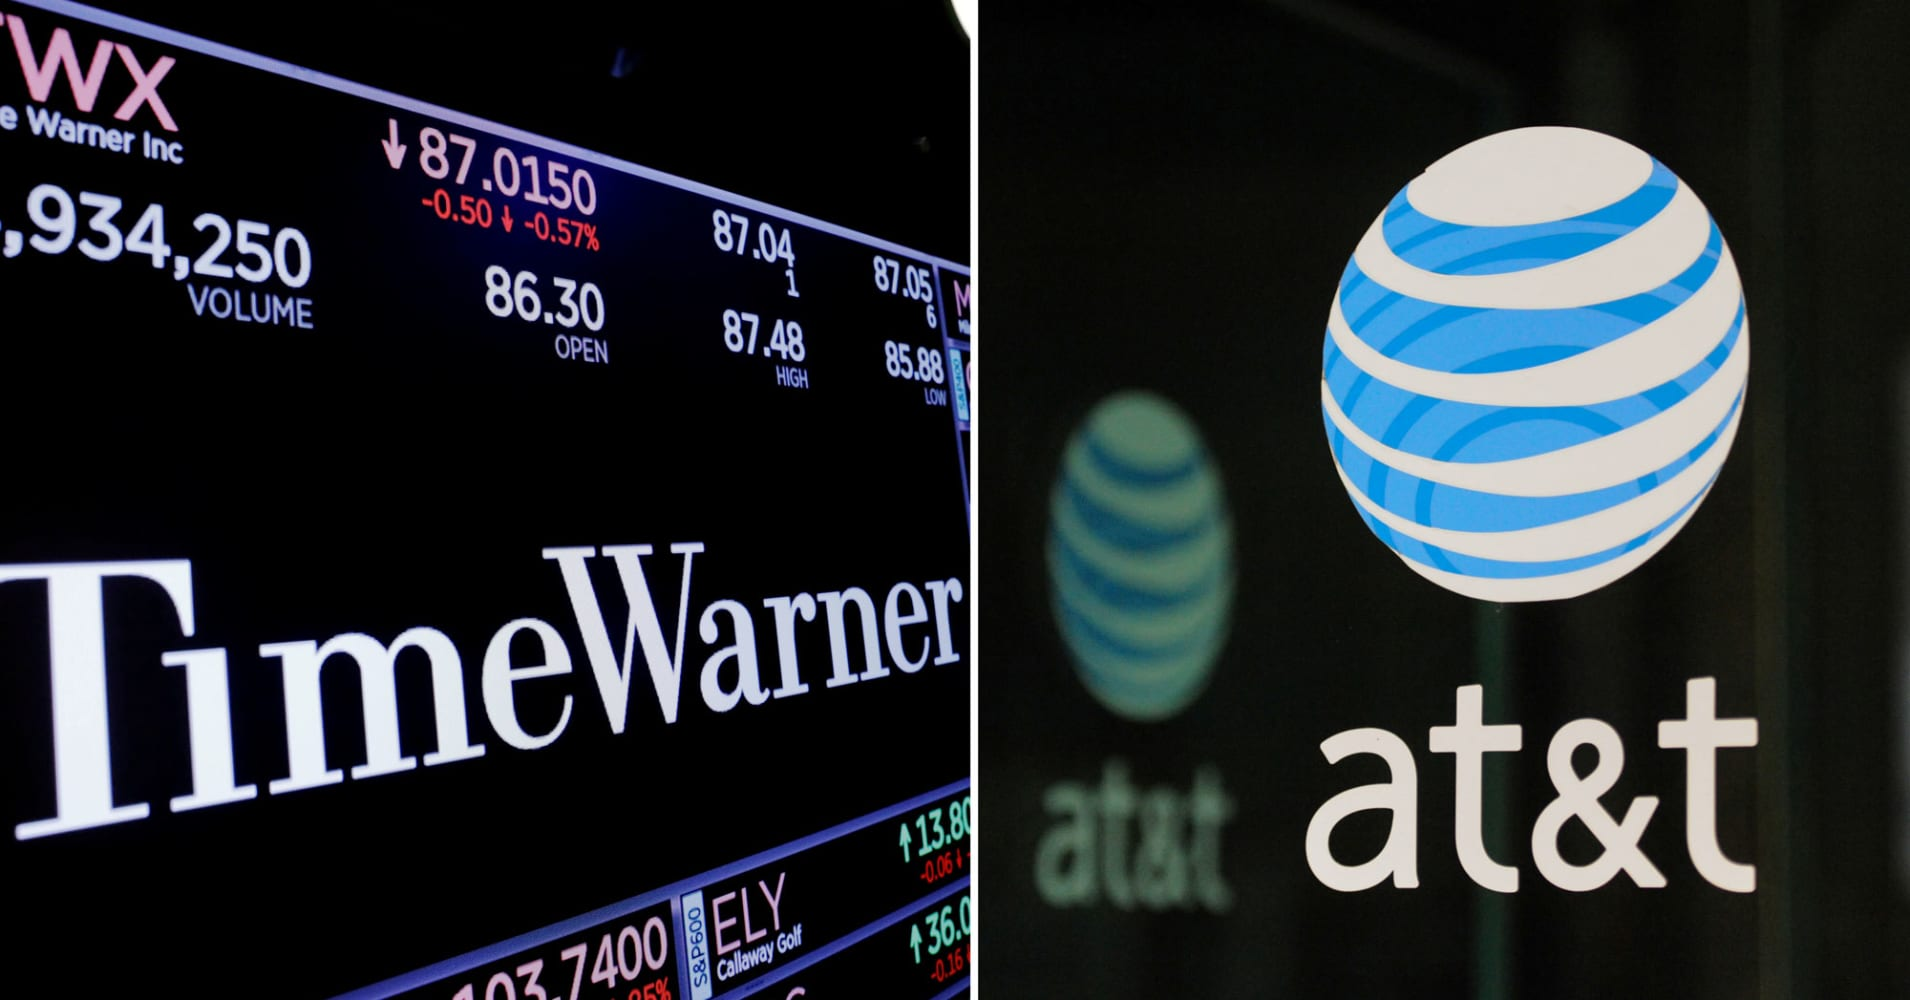 The government just gave its explanation for appealing the $85 billion AT&T-Time Warner merger